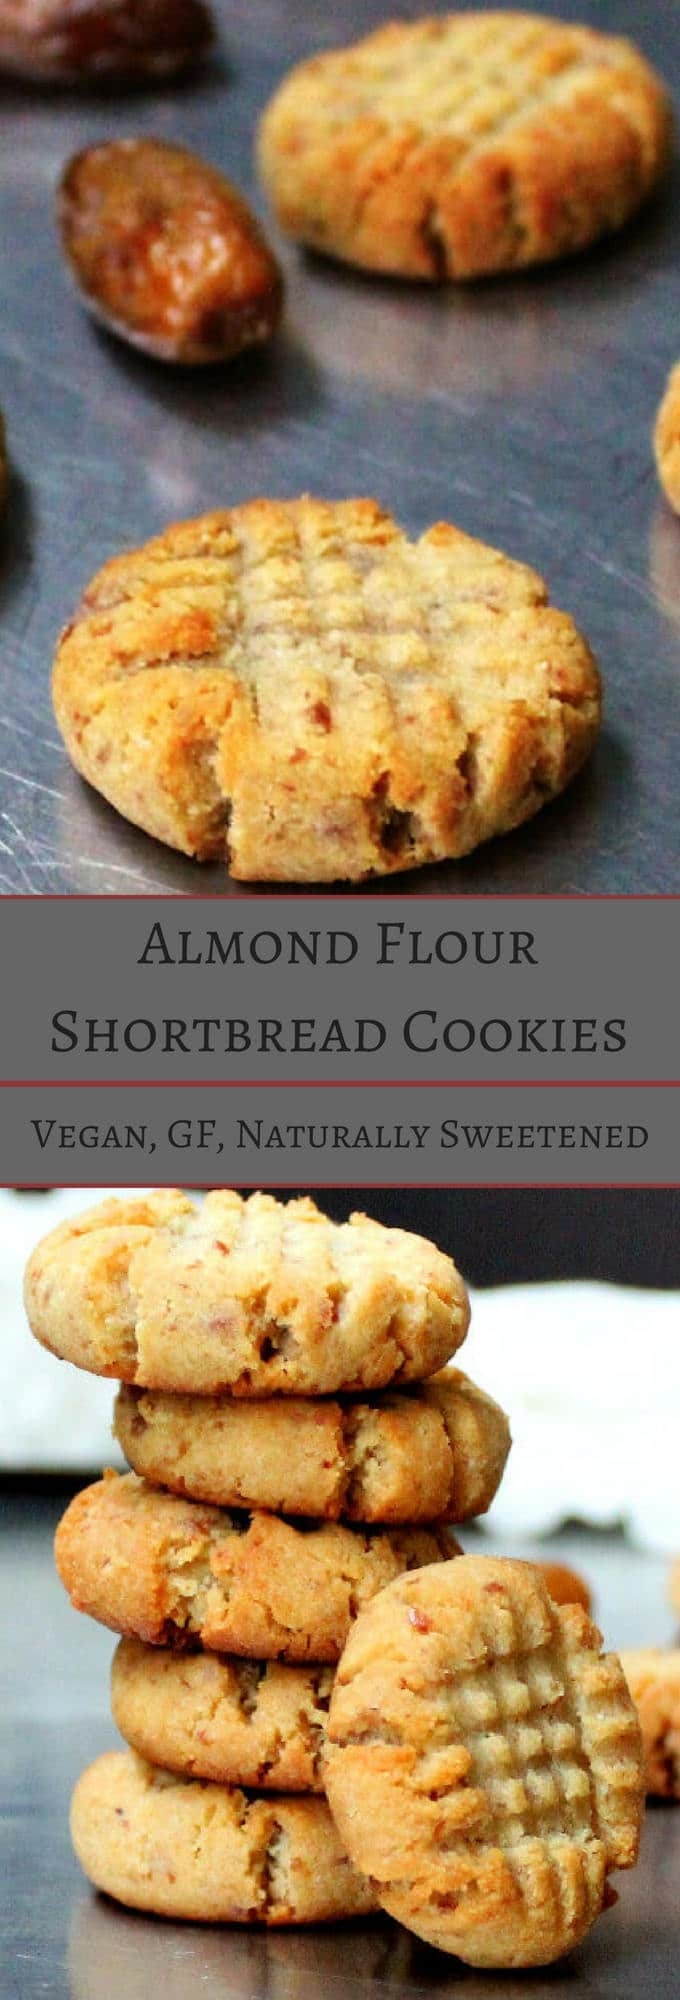 Vegan Almond Flour Shortbread Cookies, naturally sweetened and gluten free - holycowvegan.net